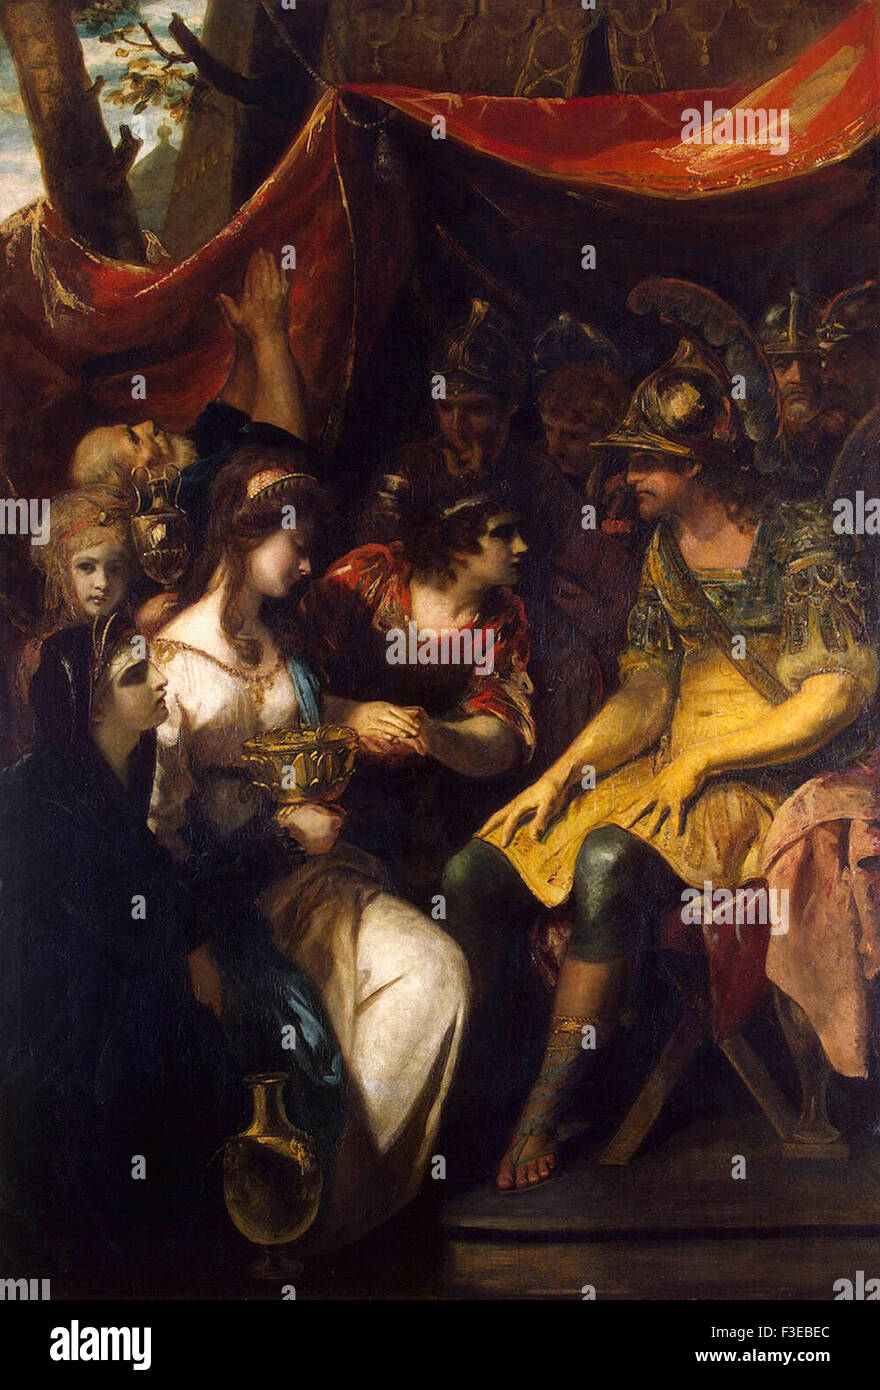 Sir Joshua Reynolds - Continence of Scipio - Stock Image